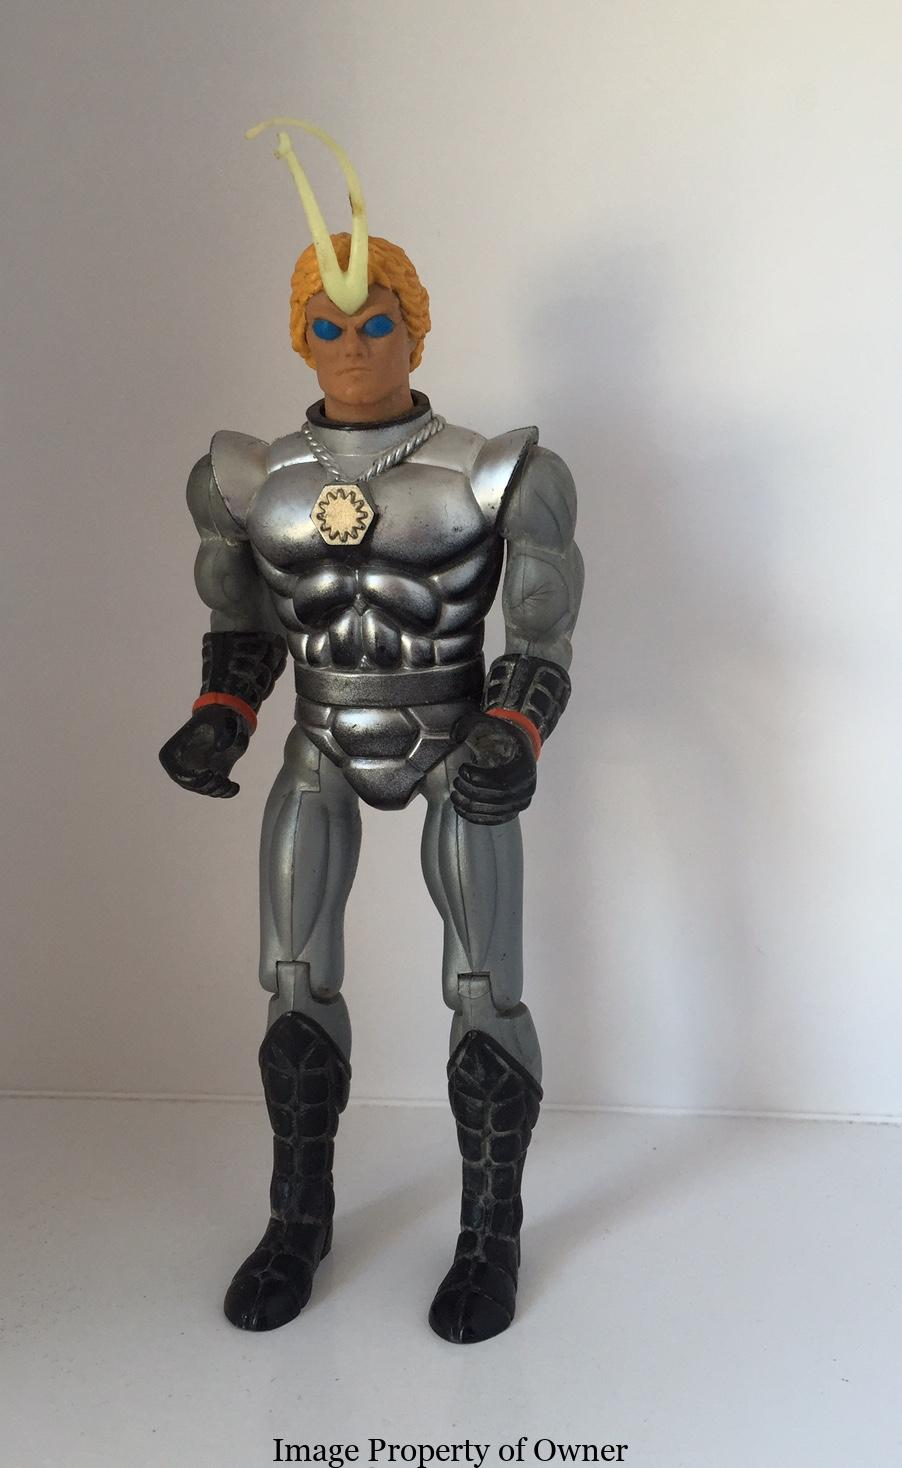 80s Toys Action Figures : Action figures yello s